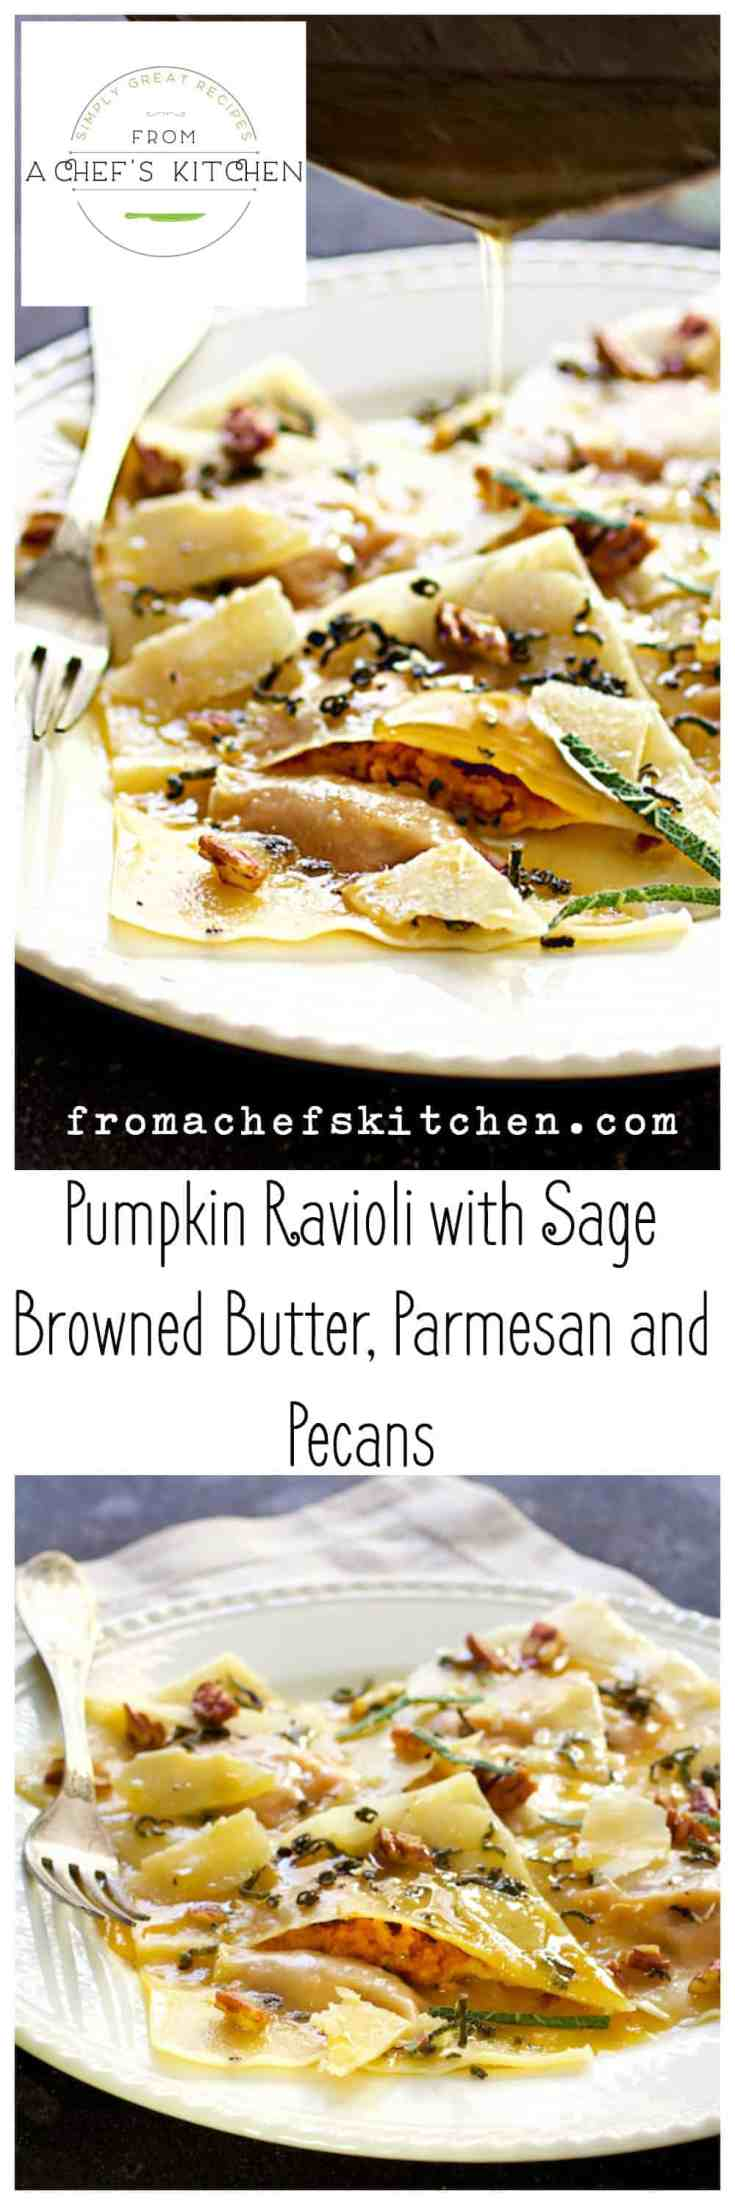 Pumpkin Ravioli with Sage Browned Butter, Parmesan and Pecans uses wonton wrappers and canned pumpkin for a lovely and easy fall-inspired dinner! #pumpkin #pumpkinravioli #pasta #pumpkinpasta #brownbutter #parmesan #pecans